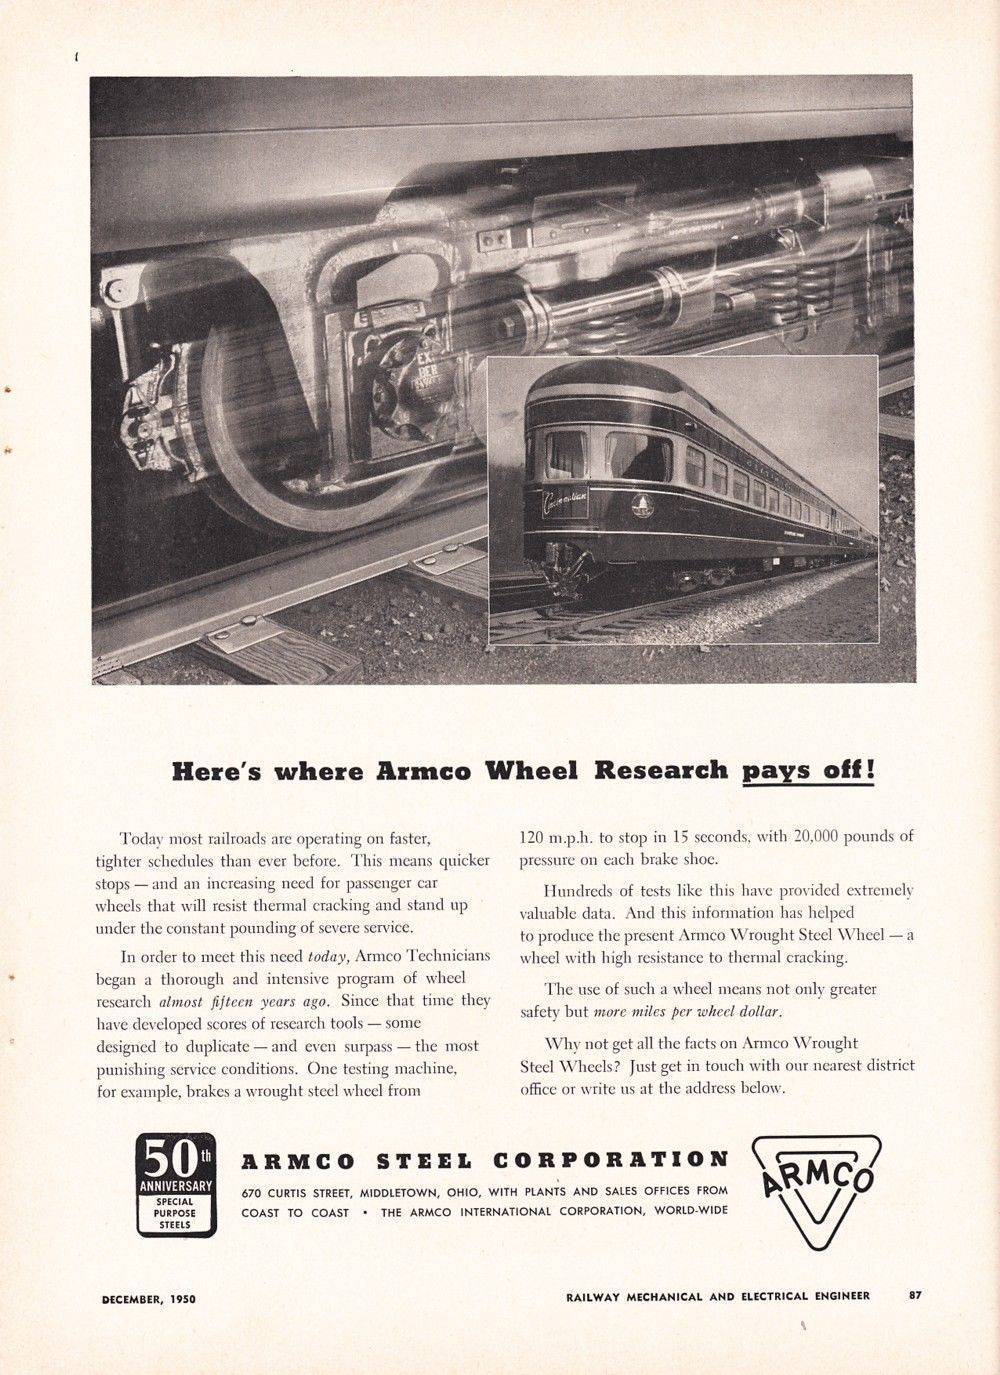 1950 Armco Steel Corp Ad B&O Baltimore & Ohio Railroad